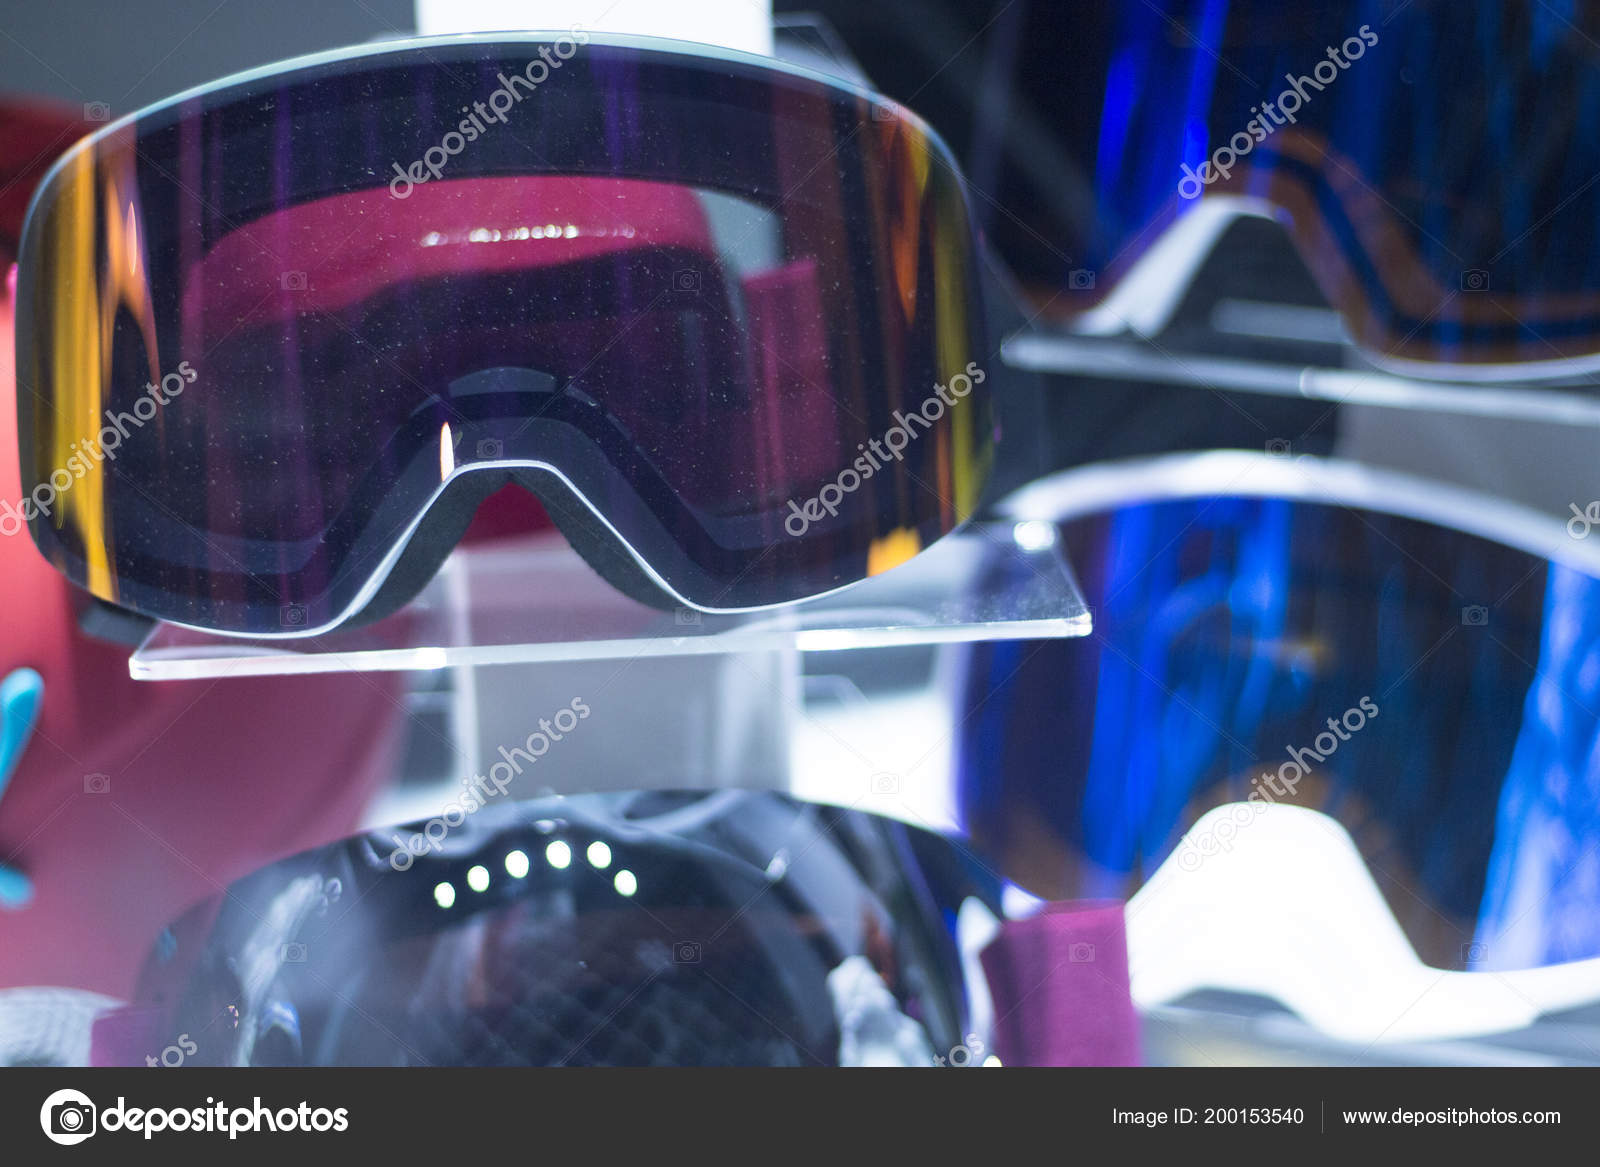 5df21cf434 Modern high technology anti reflection ski and snowboard shop goggles on  sale in store window display. — Photo by edwardolive